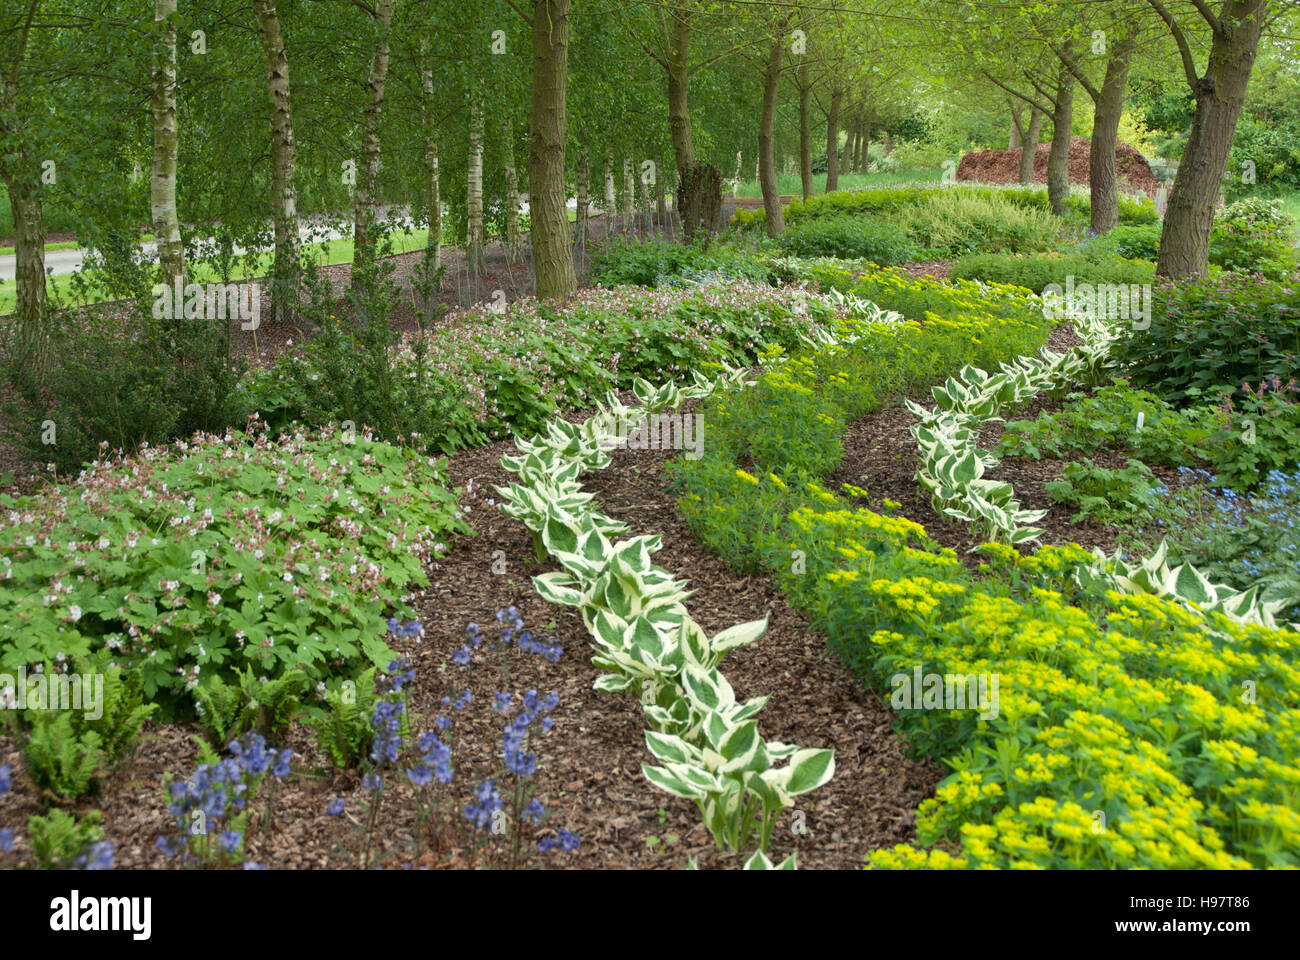 shade loving plants stock photos  shade loving plants stock, Beautiful flower